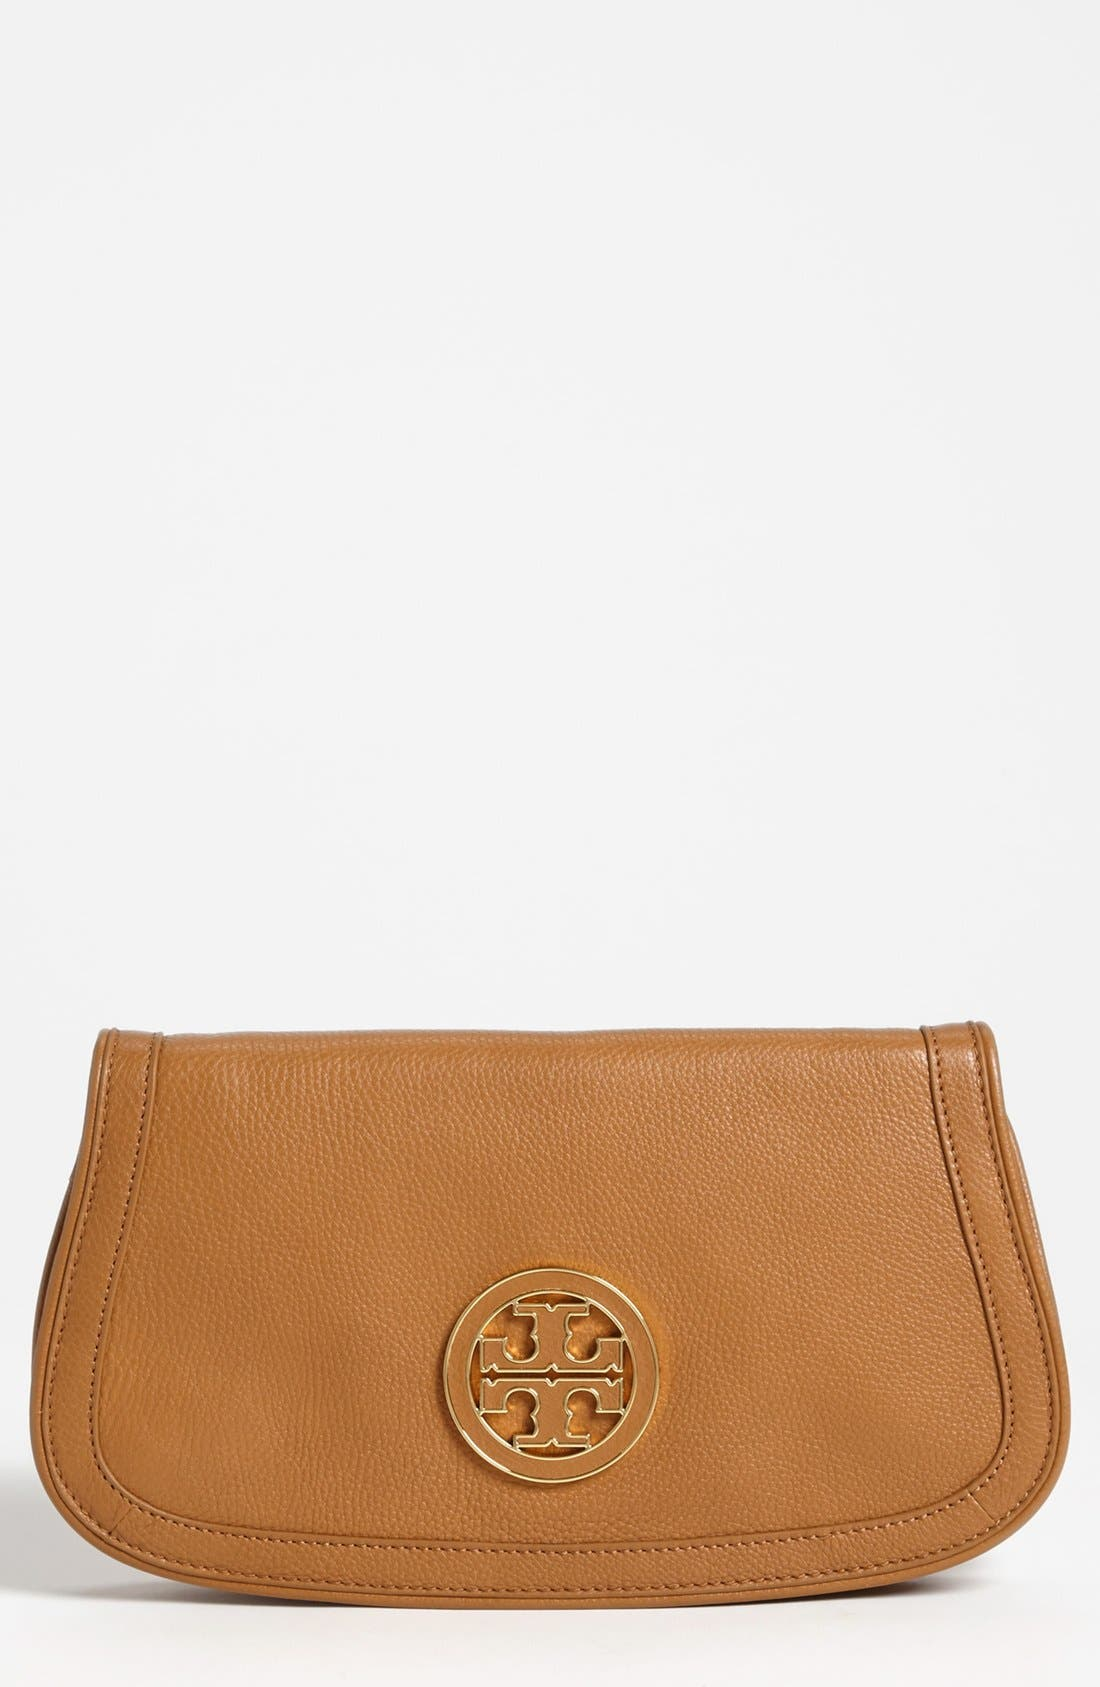 Main Image - Tory Burch 'Amanda' Logo Flap Clutch